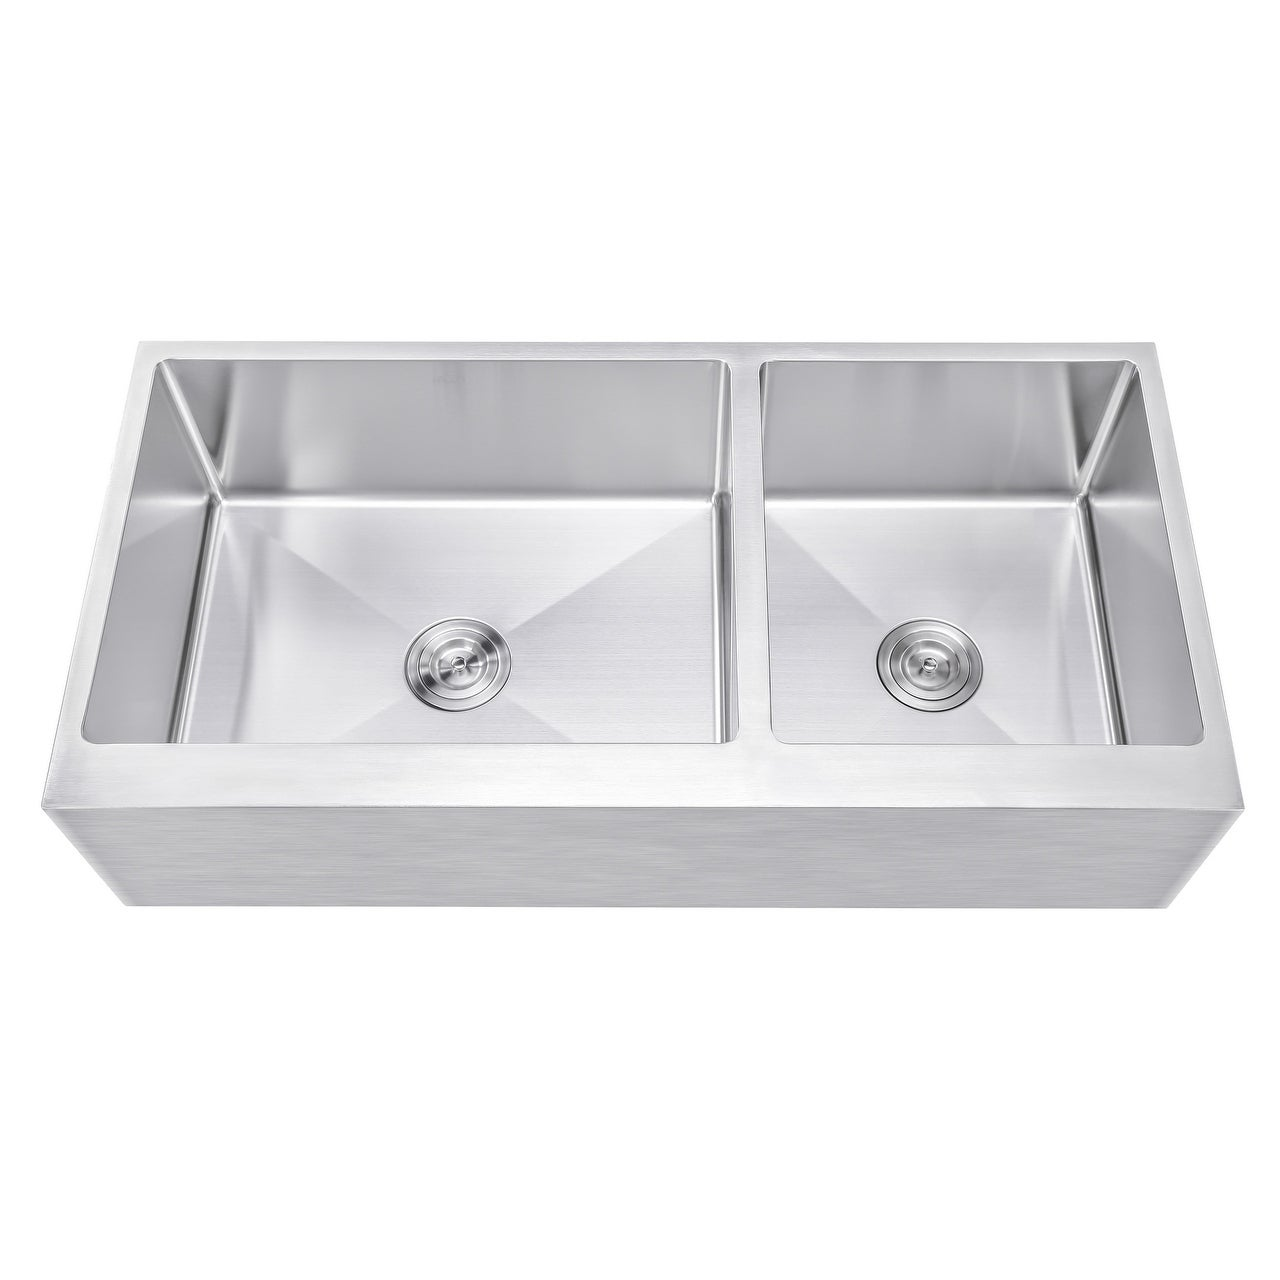 Ariel 42 Inch 60 40 Offset Double Bowl Stainless Steel Farmhouse Sink Flat A Front 15mm Radius Coved Corners